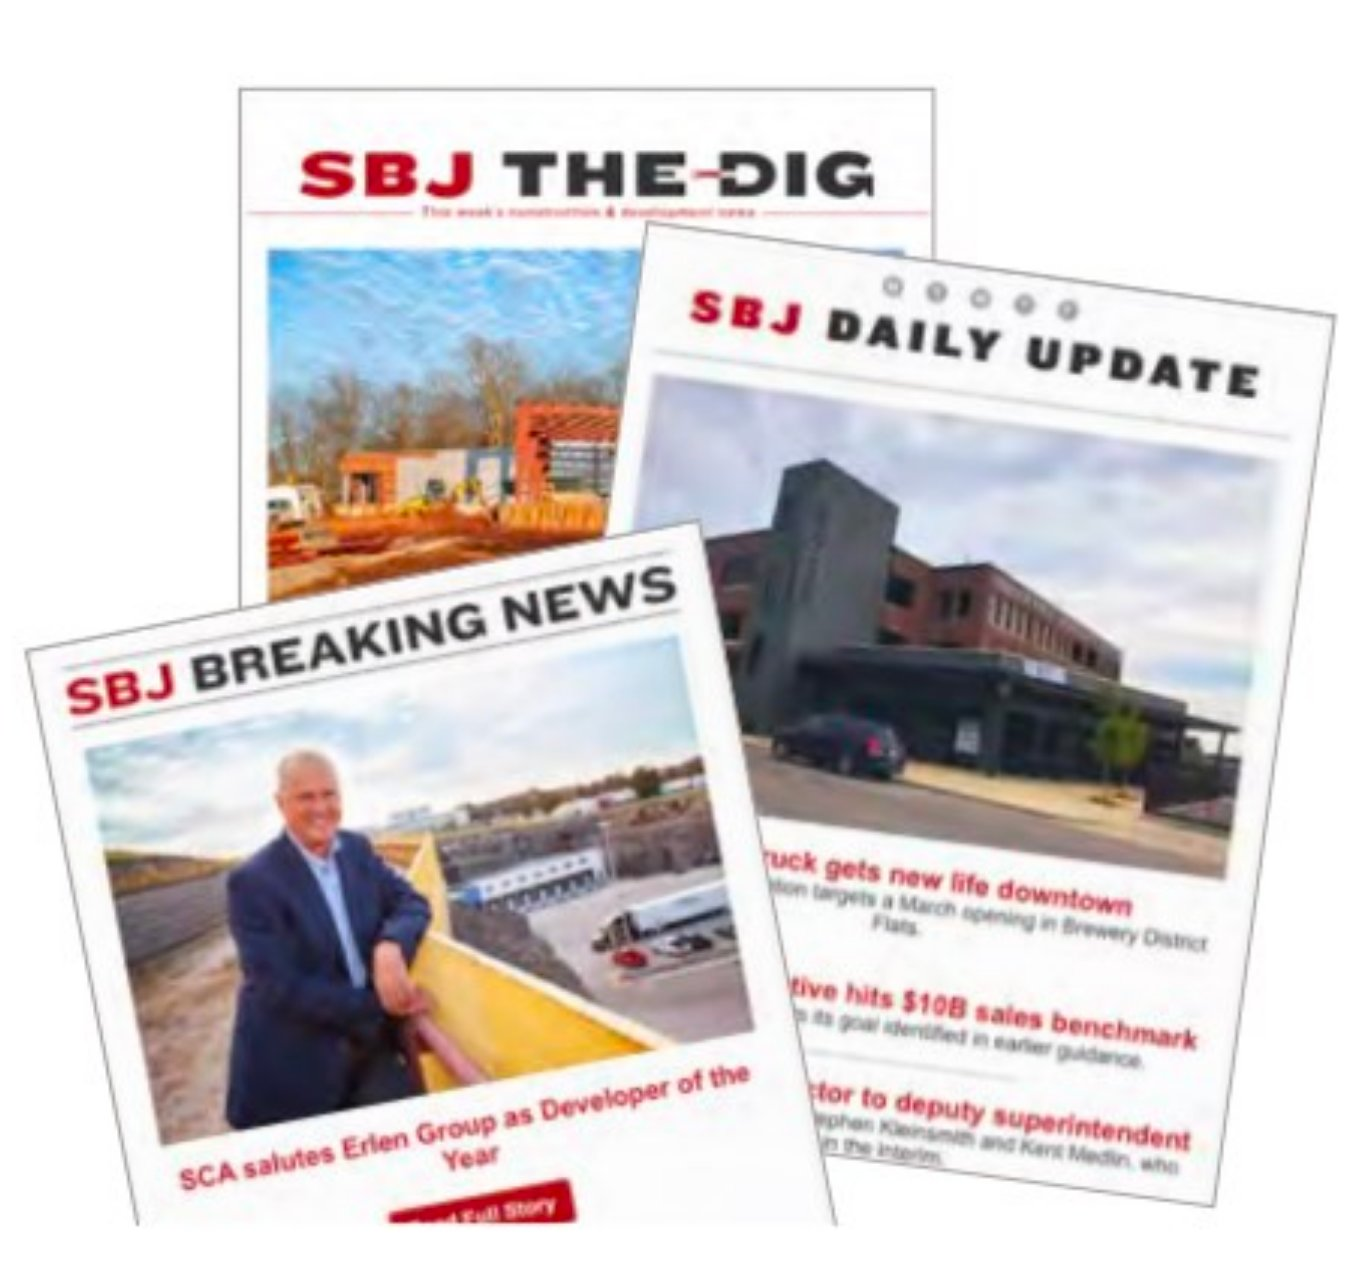 SBJ's e-newsletters are getting a new look.